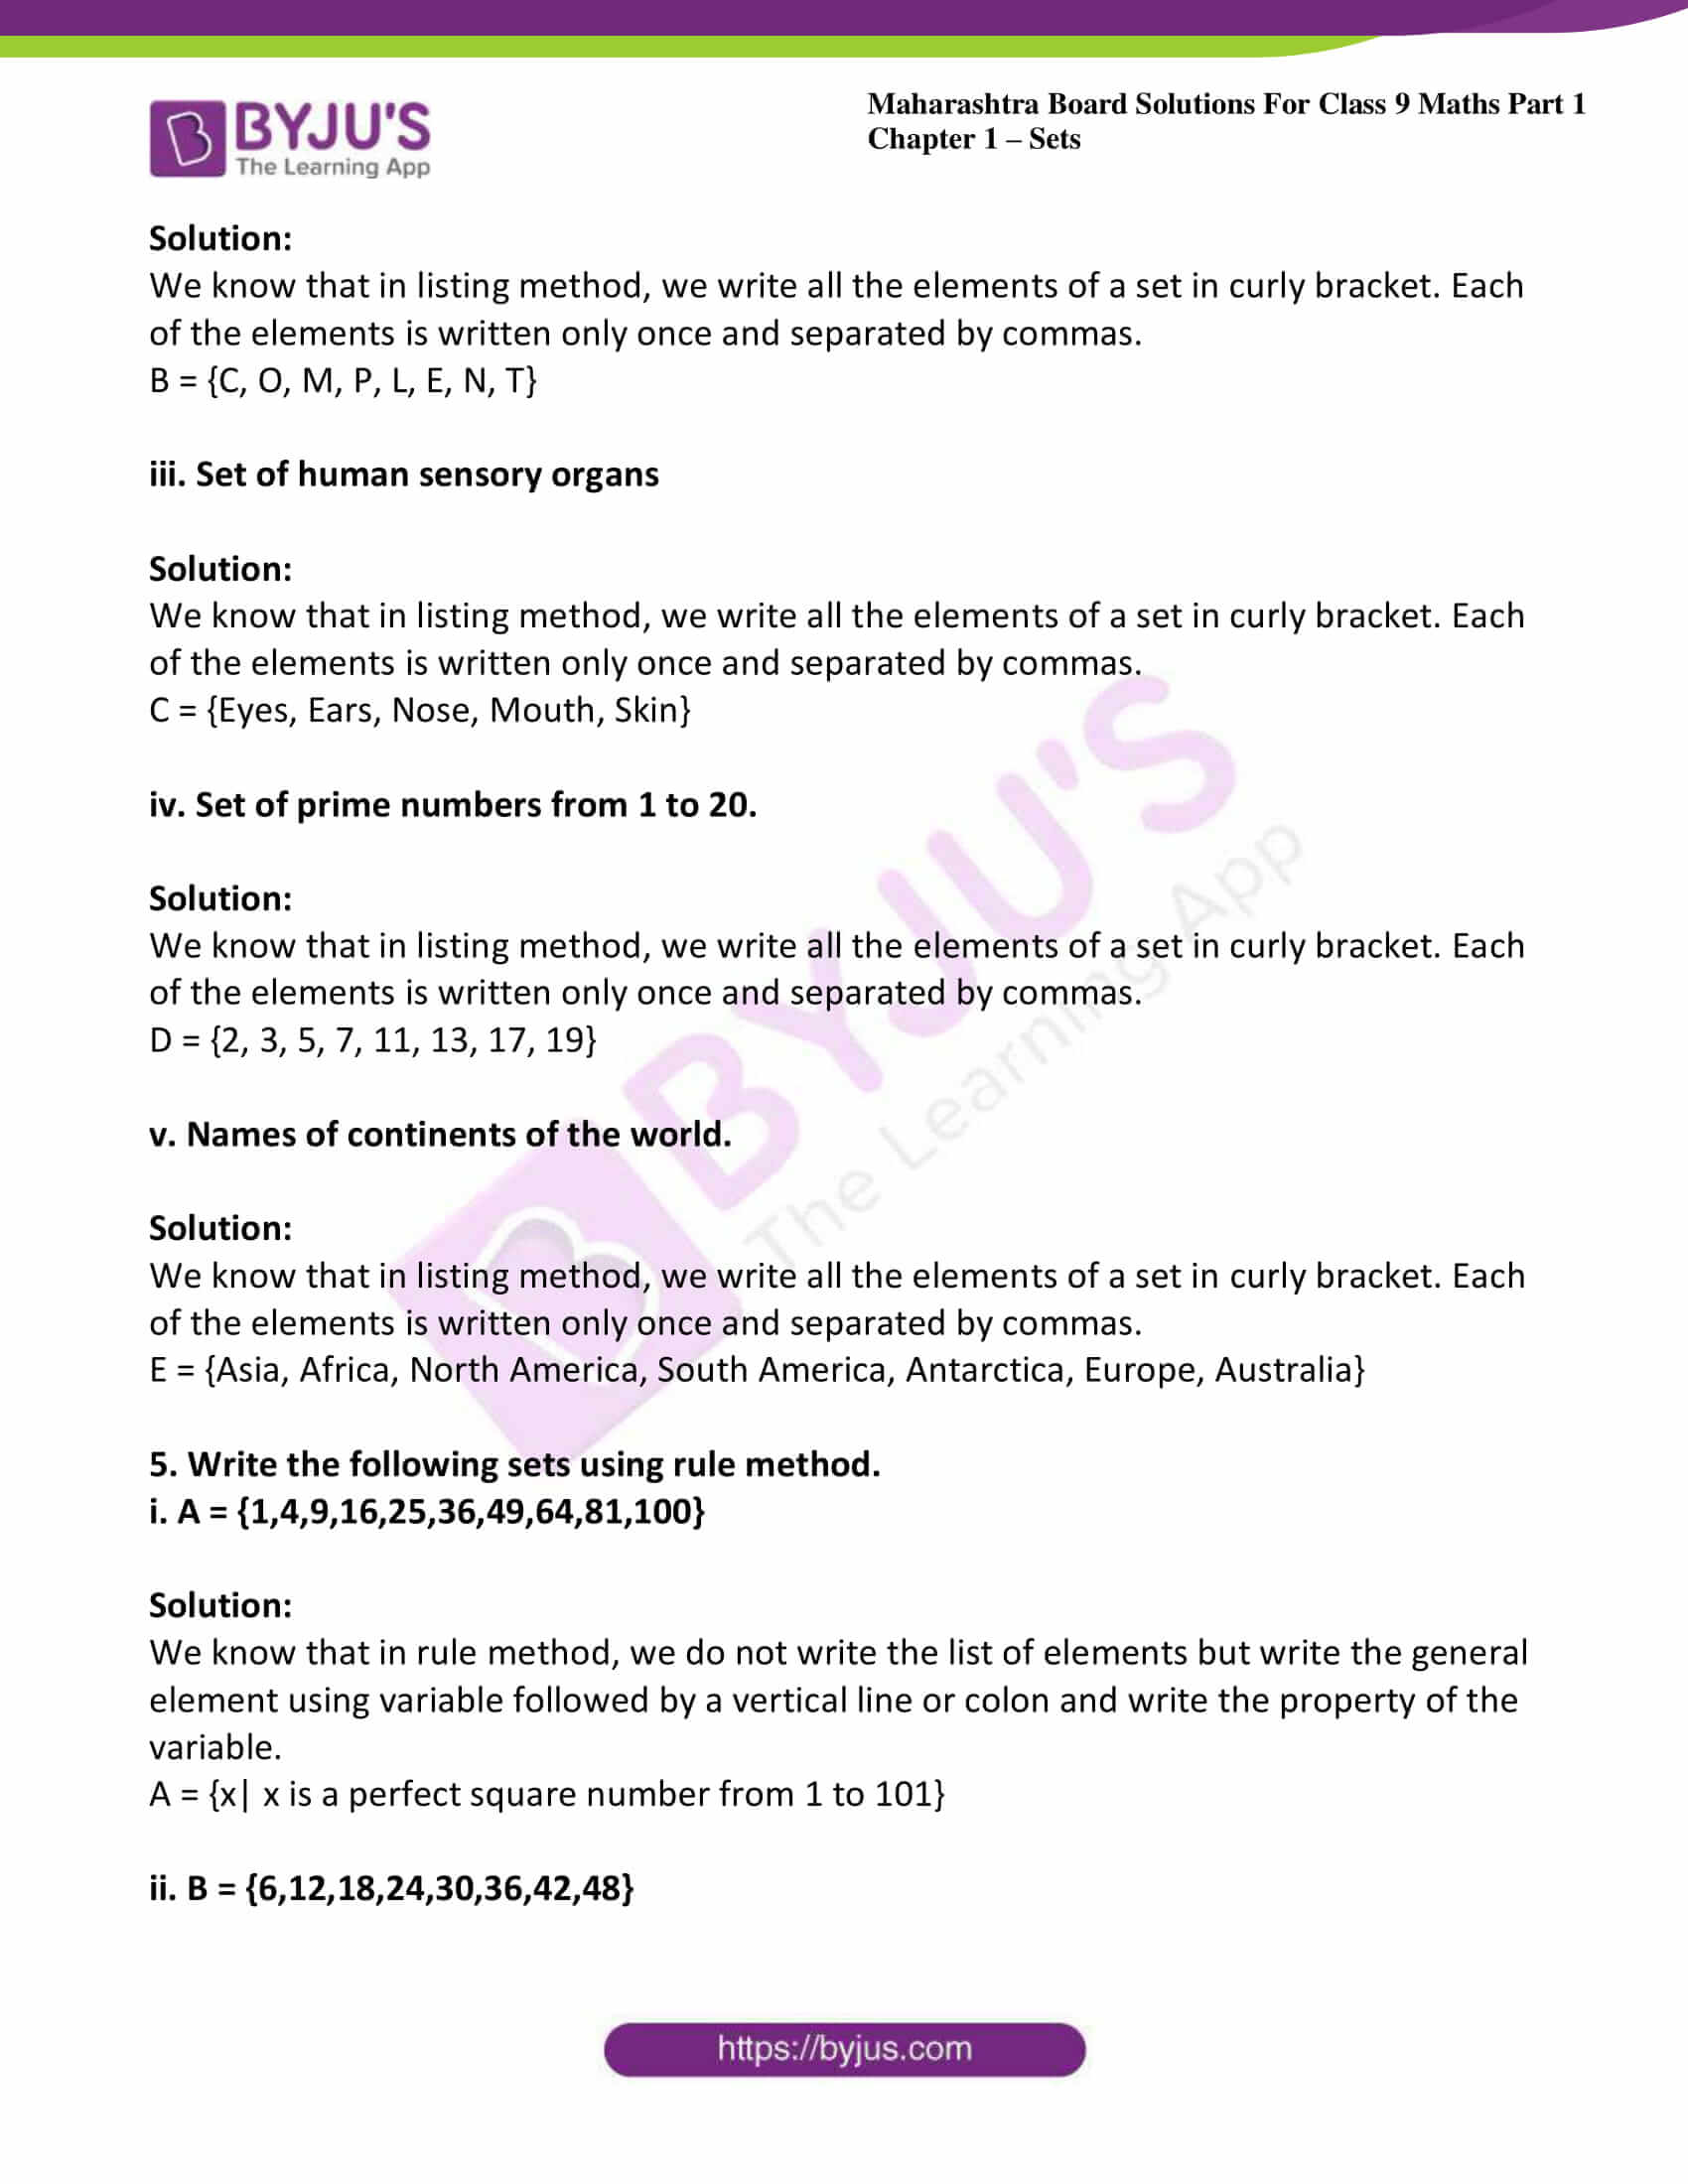 msbshse sol class 9 maths part 1 chapter 1 sets 03